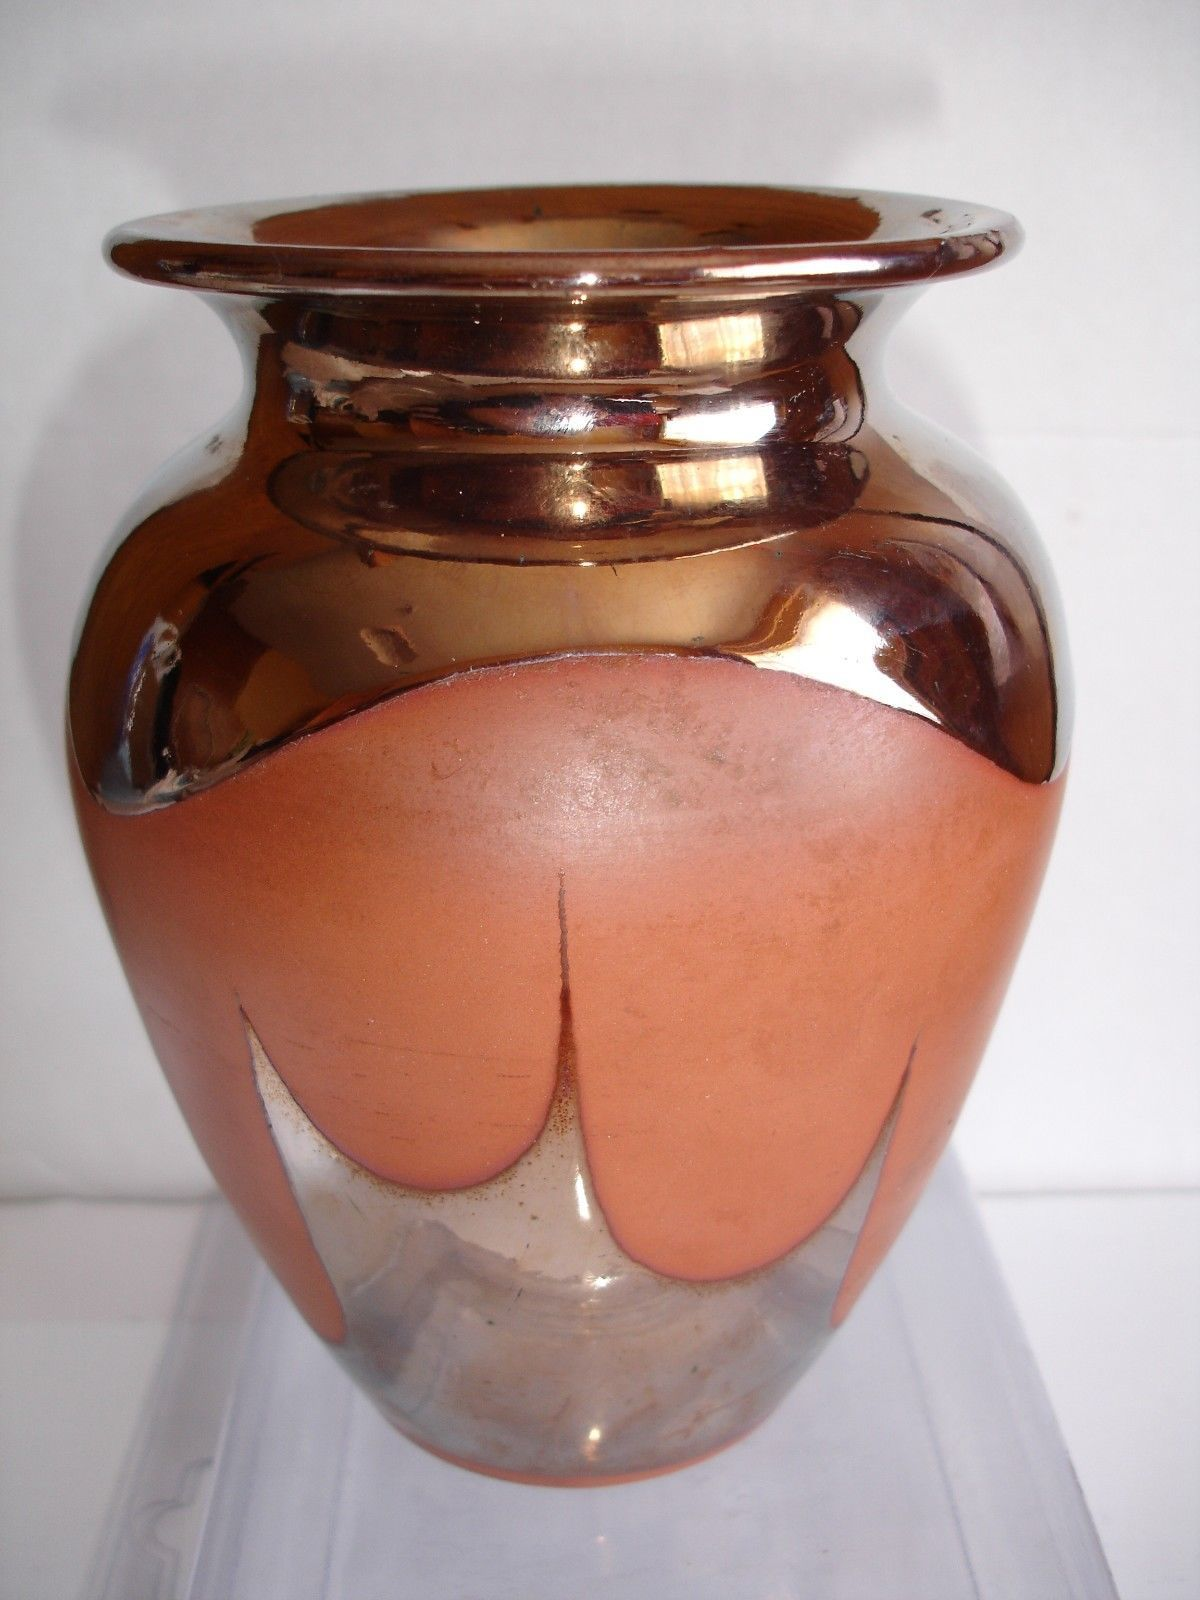 Primary image for Terracotta and Gold Marked Vase 15cm